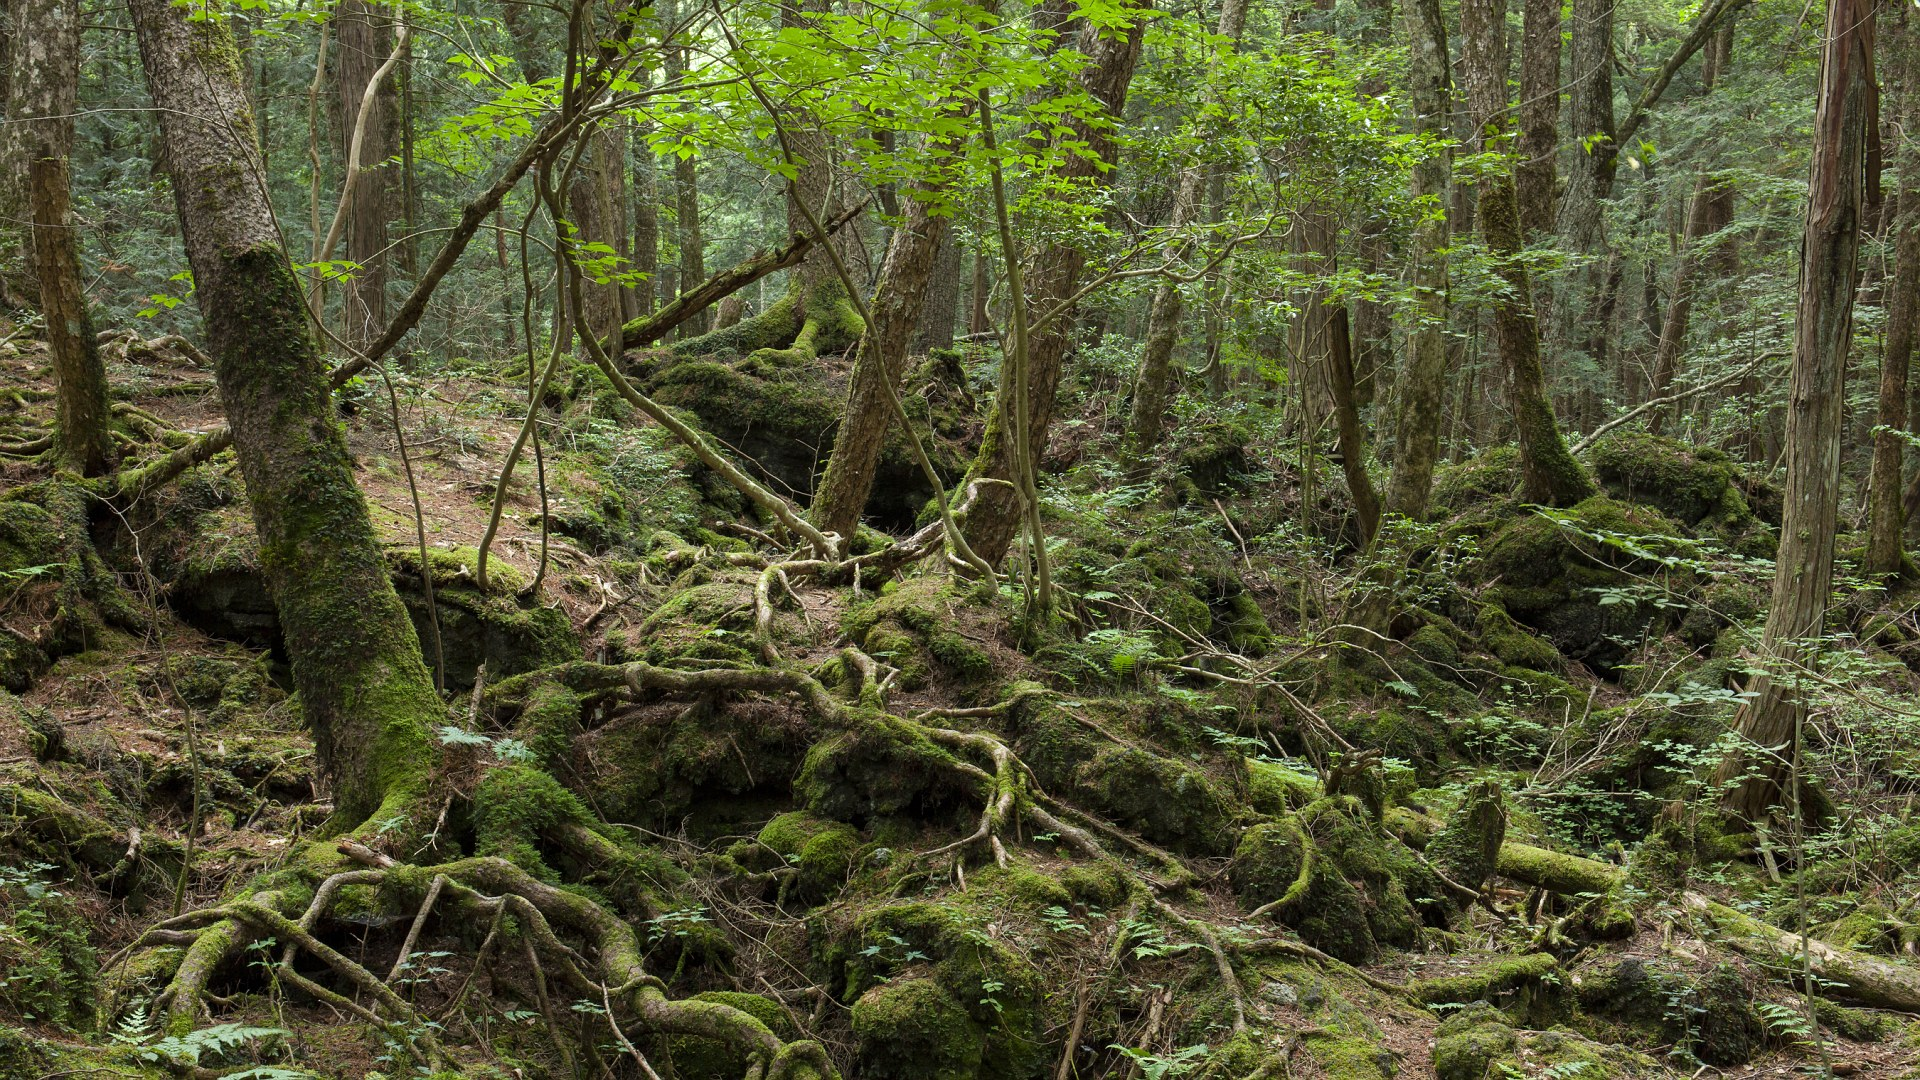 Japan, Koshinetsu Region, Yamanashi Prefecture, Fujikawaguchiko, View of moss and tree in Aokigahara forest. (Photo by: JTB Photo/UIG via Getty Images)